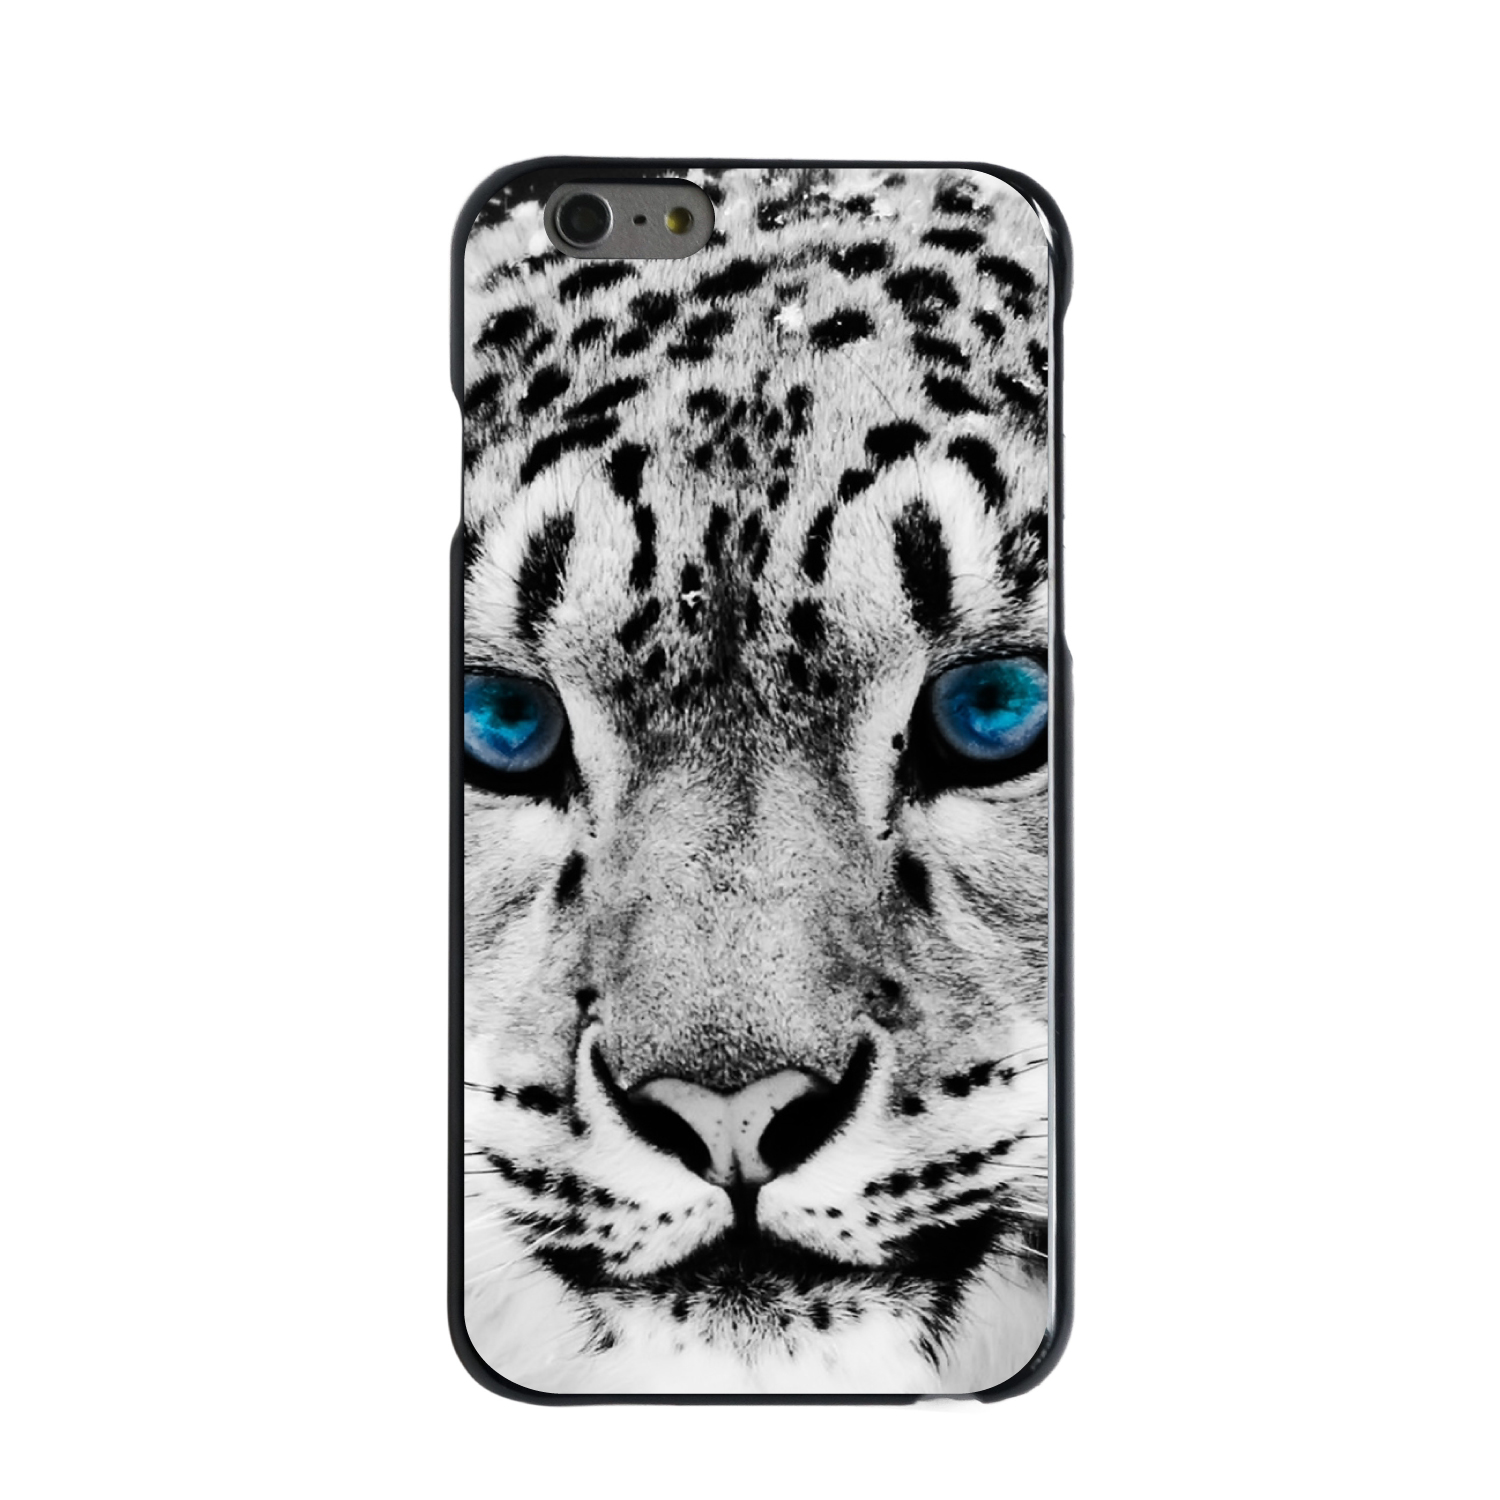 "CUSTOM Black Hard Plastic Snap-On Case for Apple iPhone 6 PLUS / 6S PLUS (5.5"" Screen) - Snow Leopard Blue Eyes"